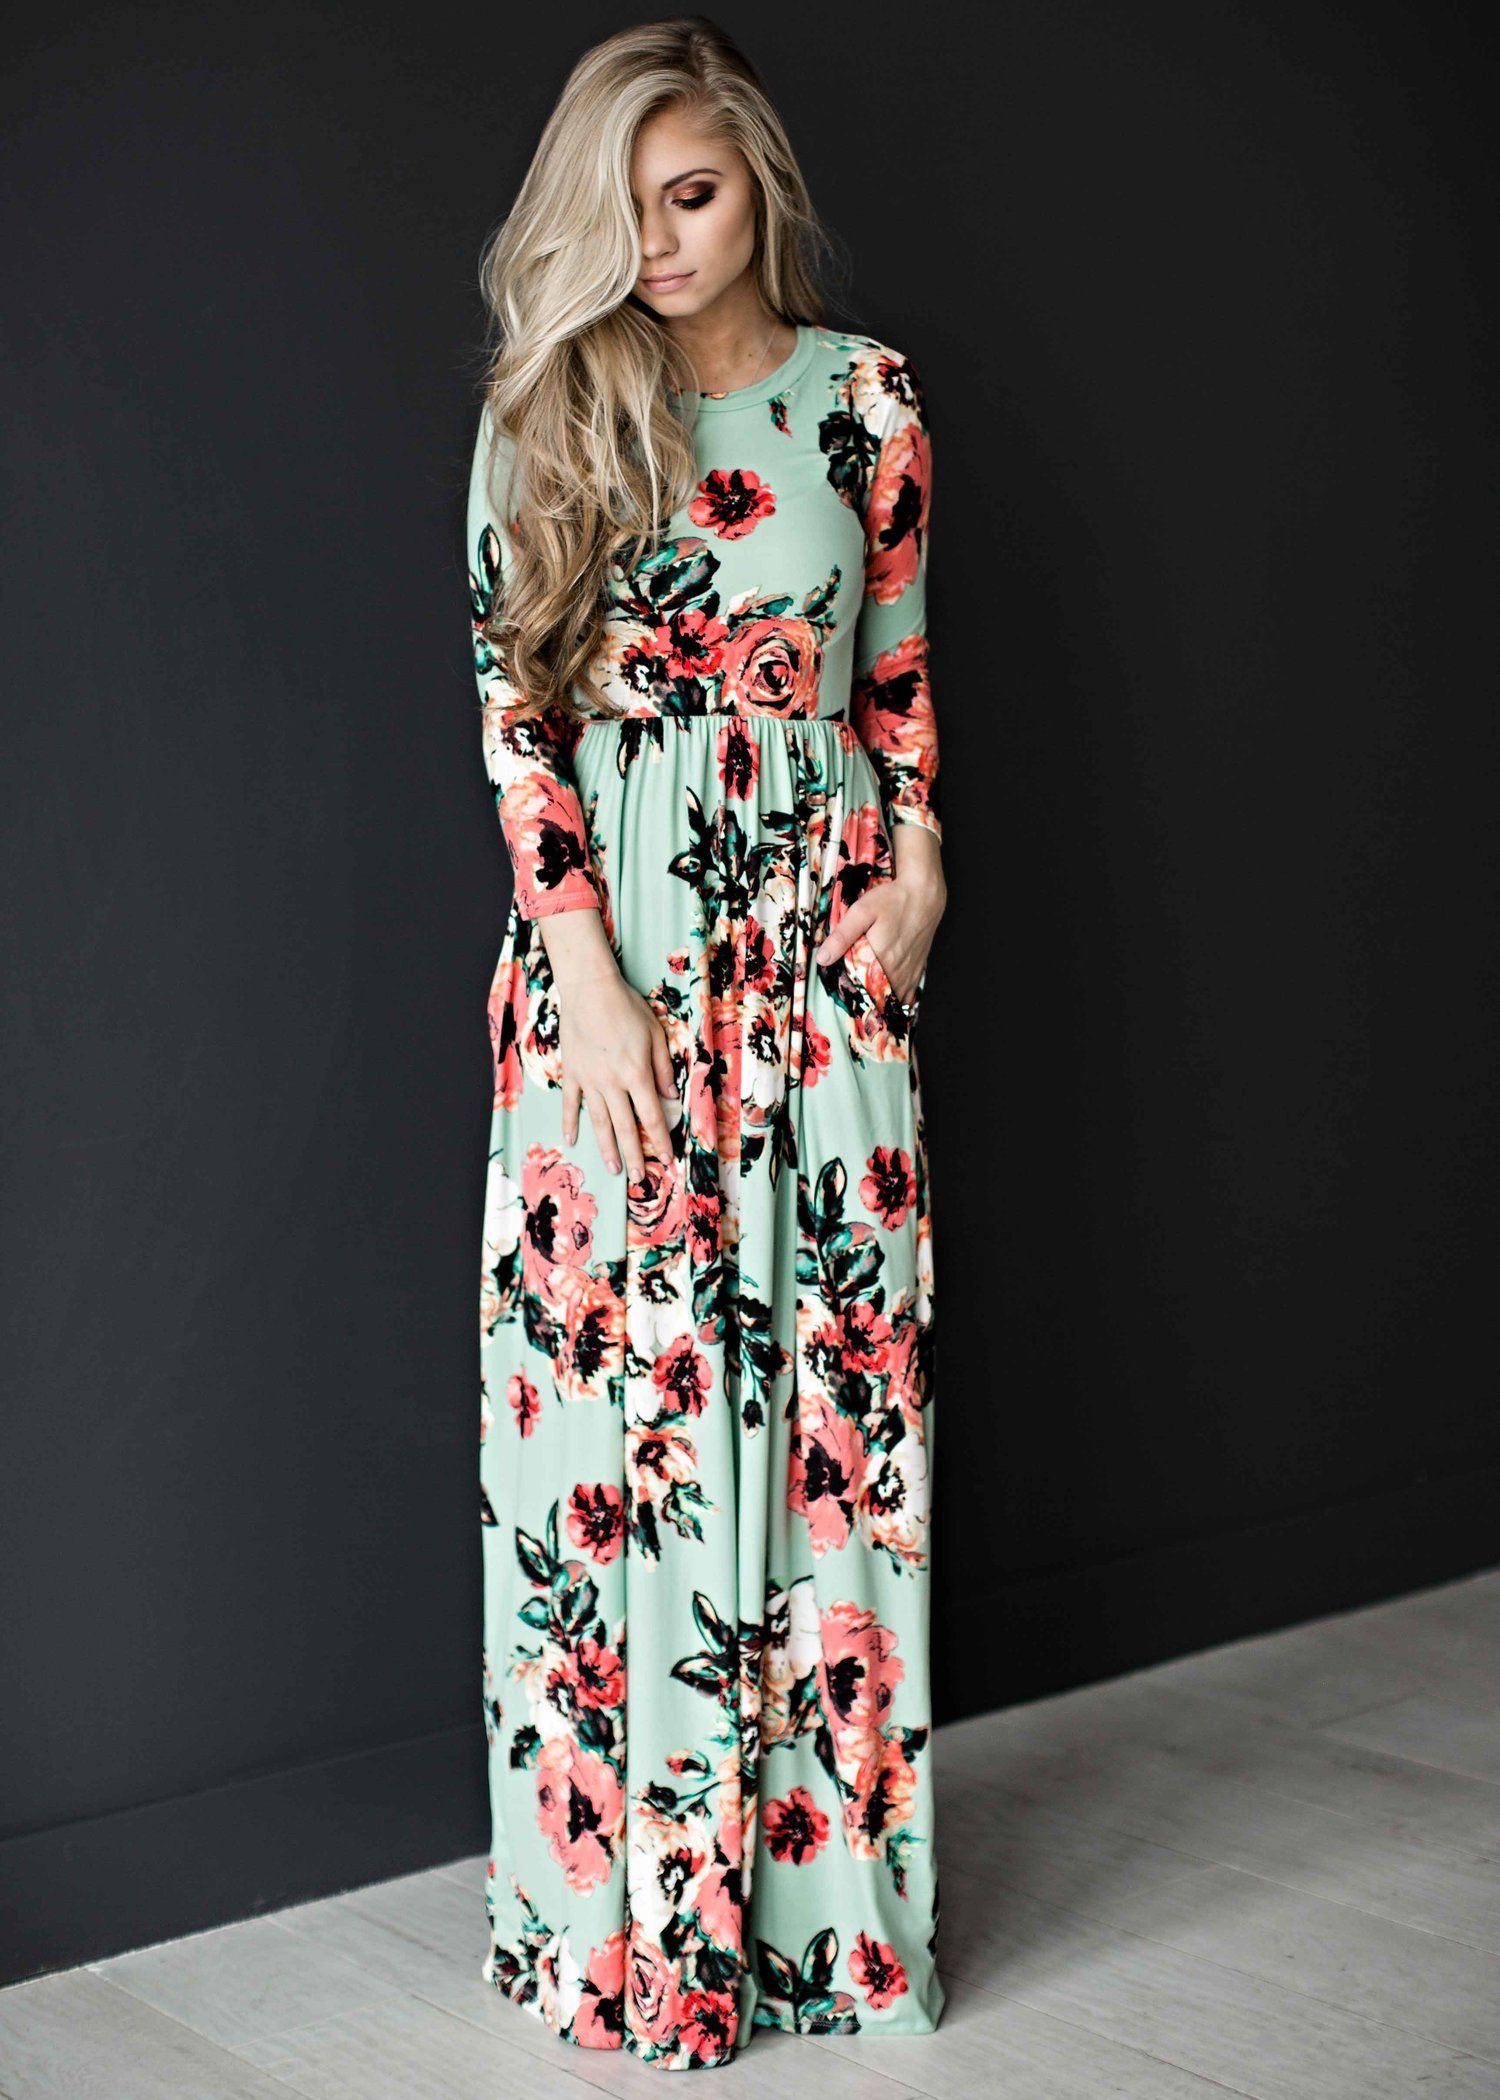 aab8e1a567 floral dress, floral, easter dress, blonde, hair, fashion, style, makeup,  ootd, womens fashion, jessakae, shop, maxi dress